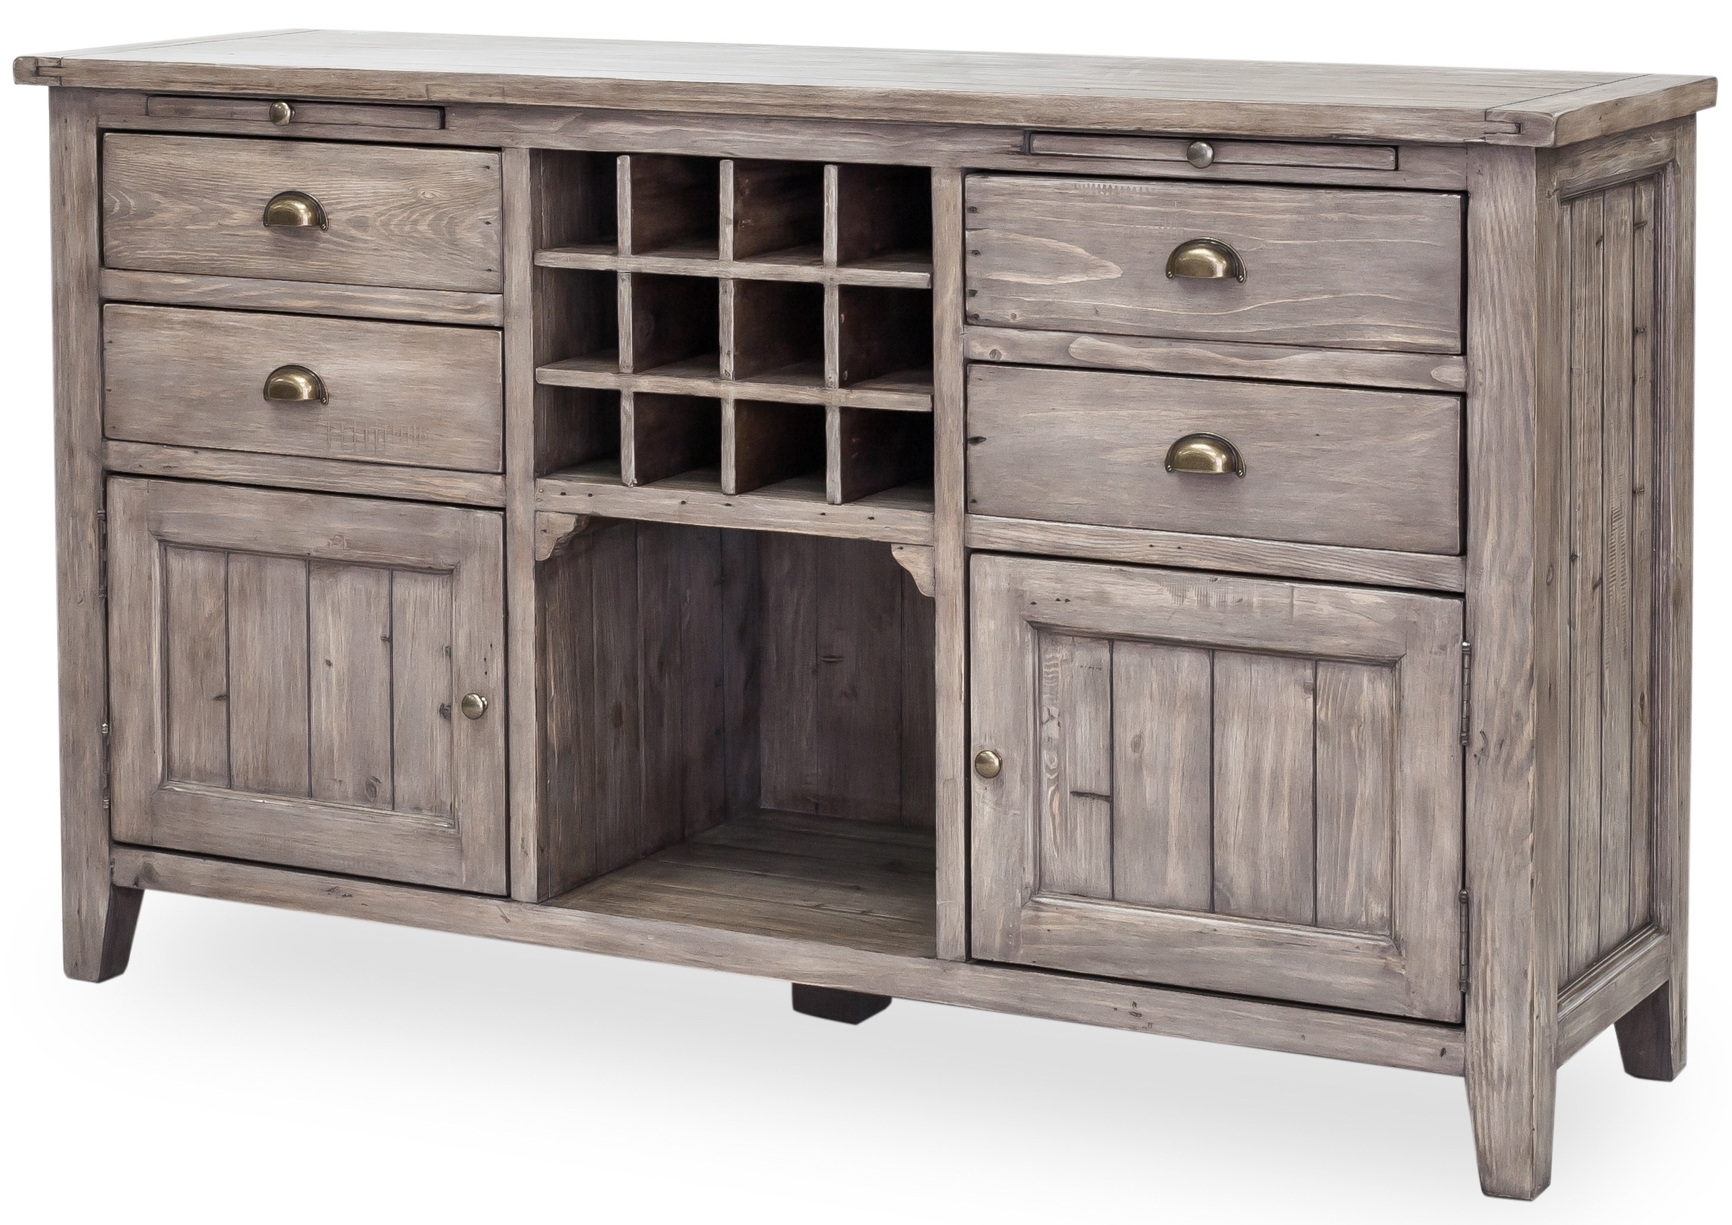 Cabinets, Consoles & Sofa Tables | Htgt Furniture within Light Brown Reclaimed Elm & Pine 84 Inch Sideboards (Image 12 of 30)